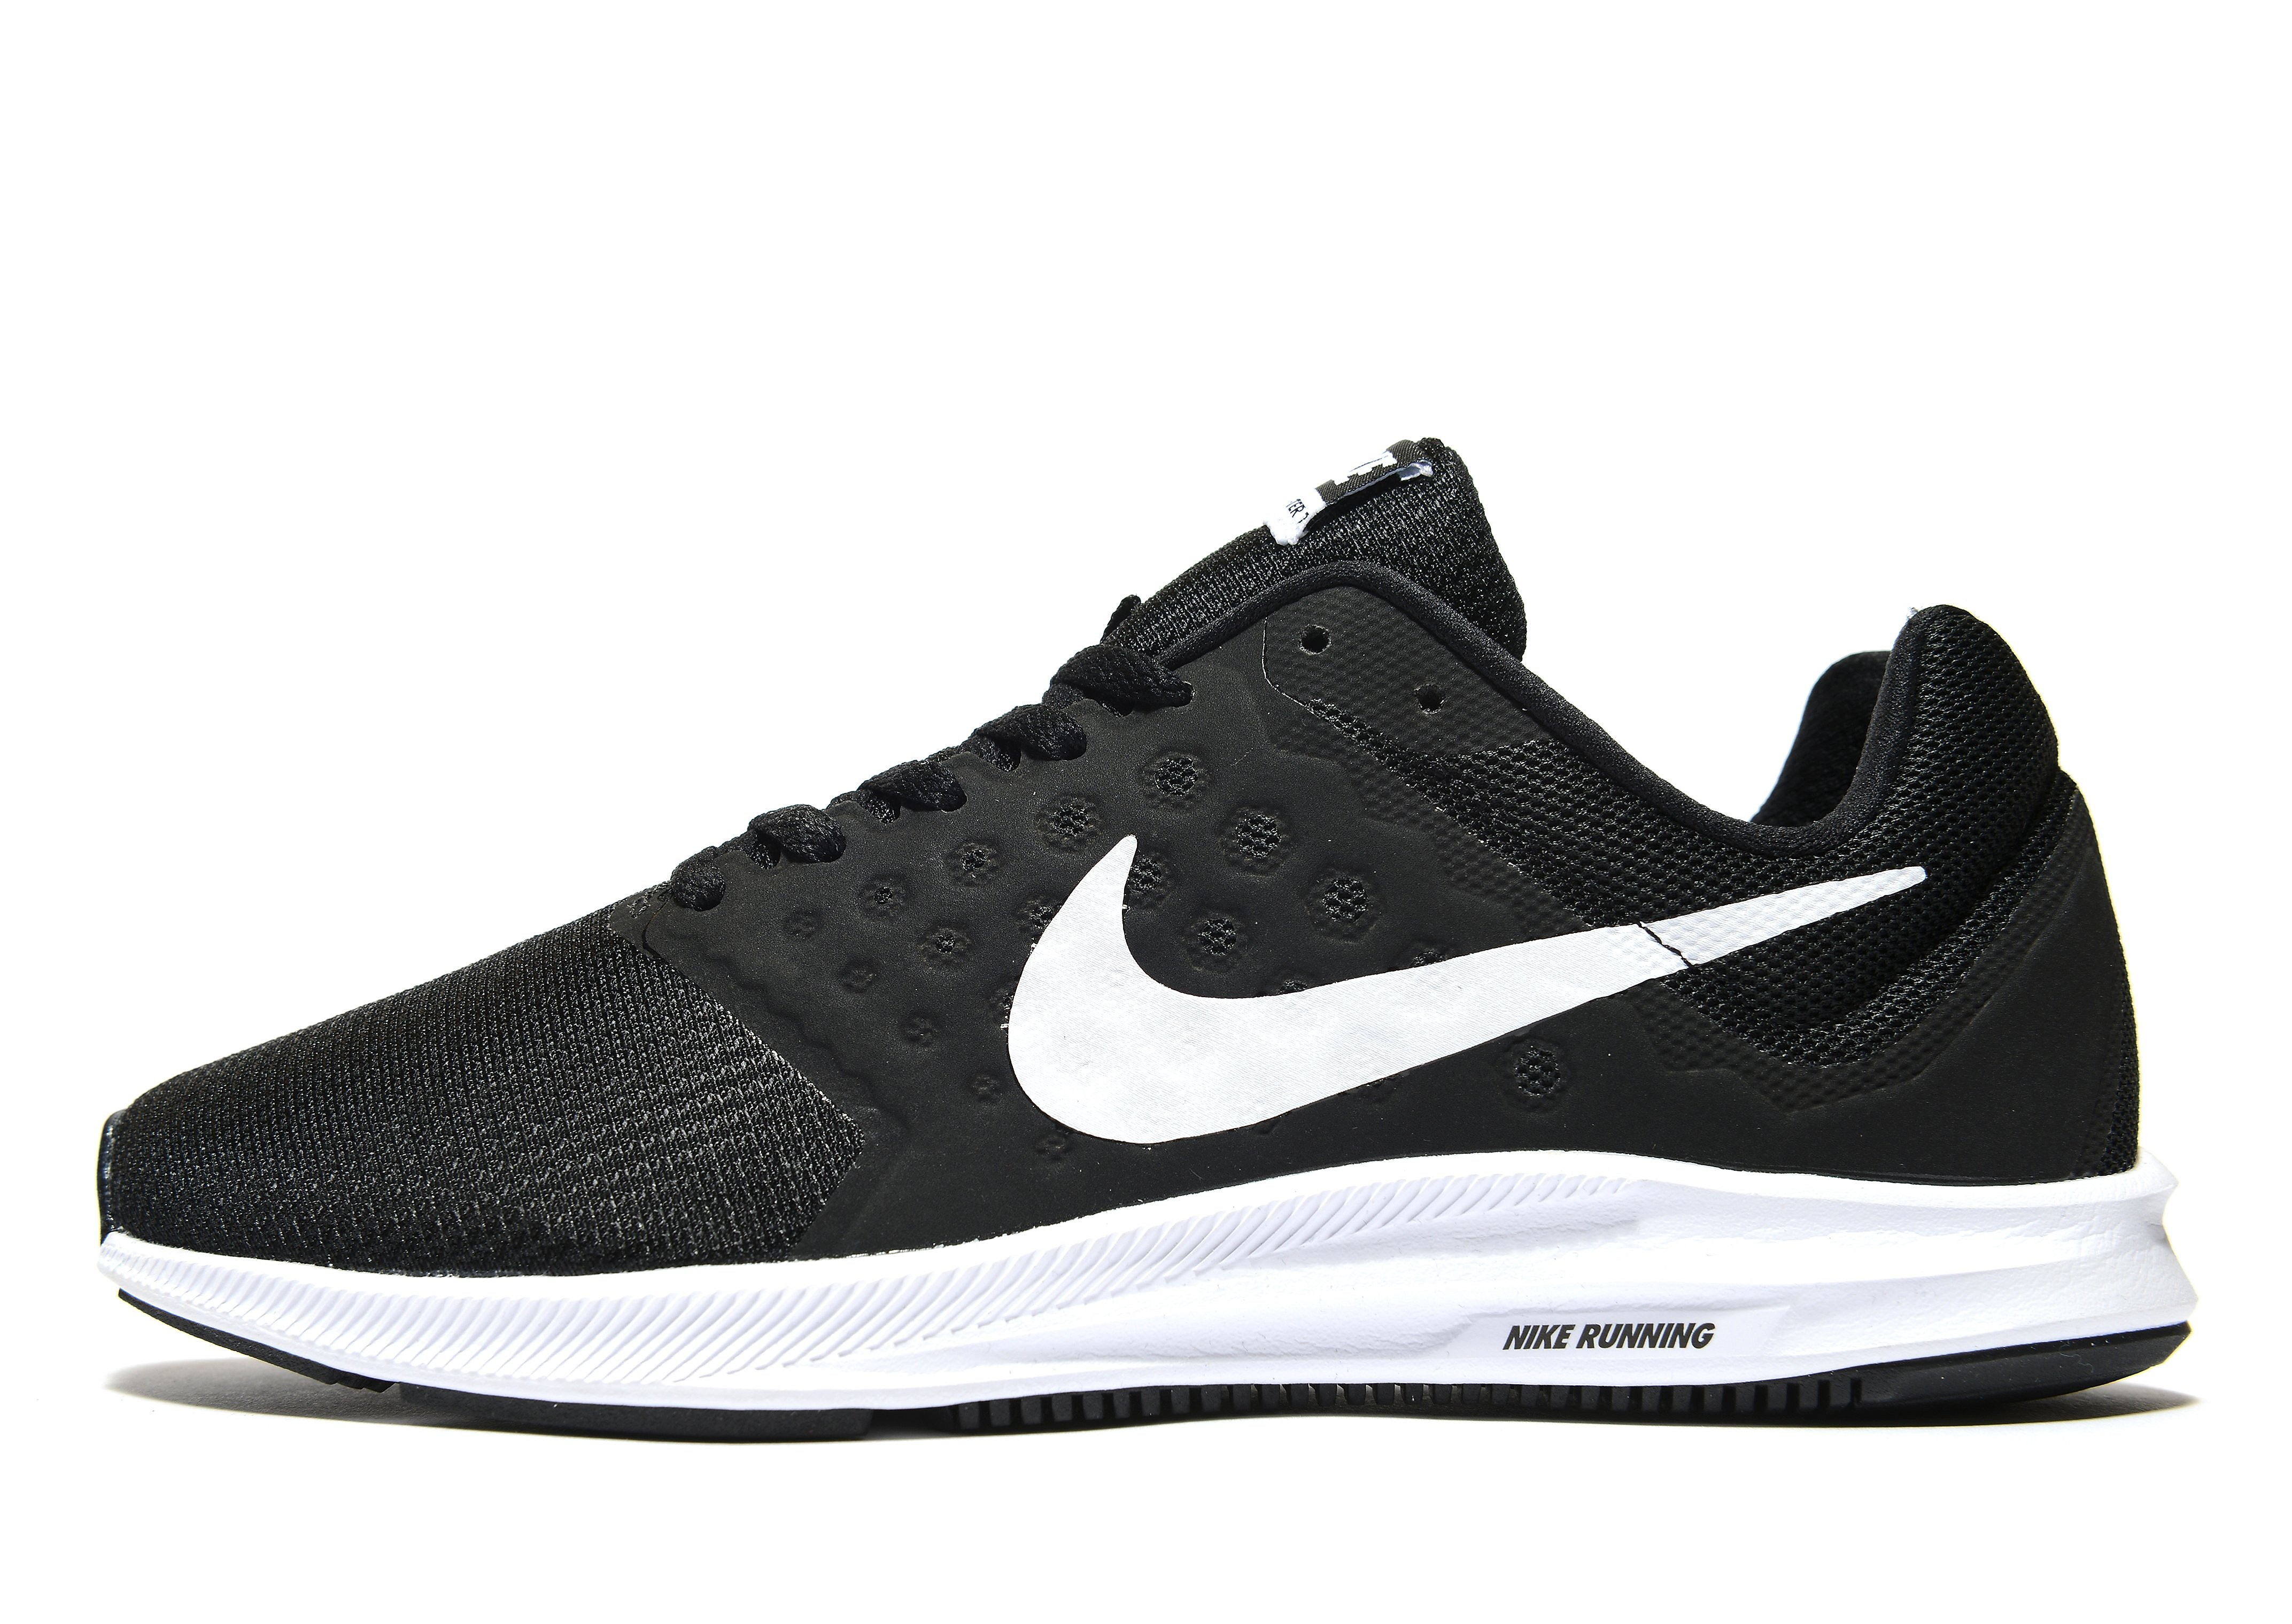 Nike Downshifter 7 Women's